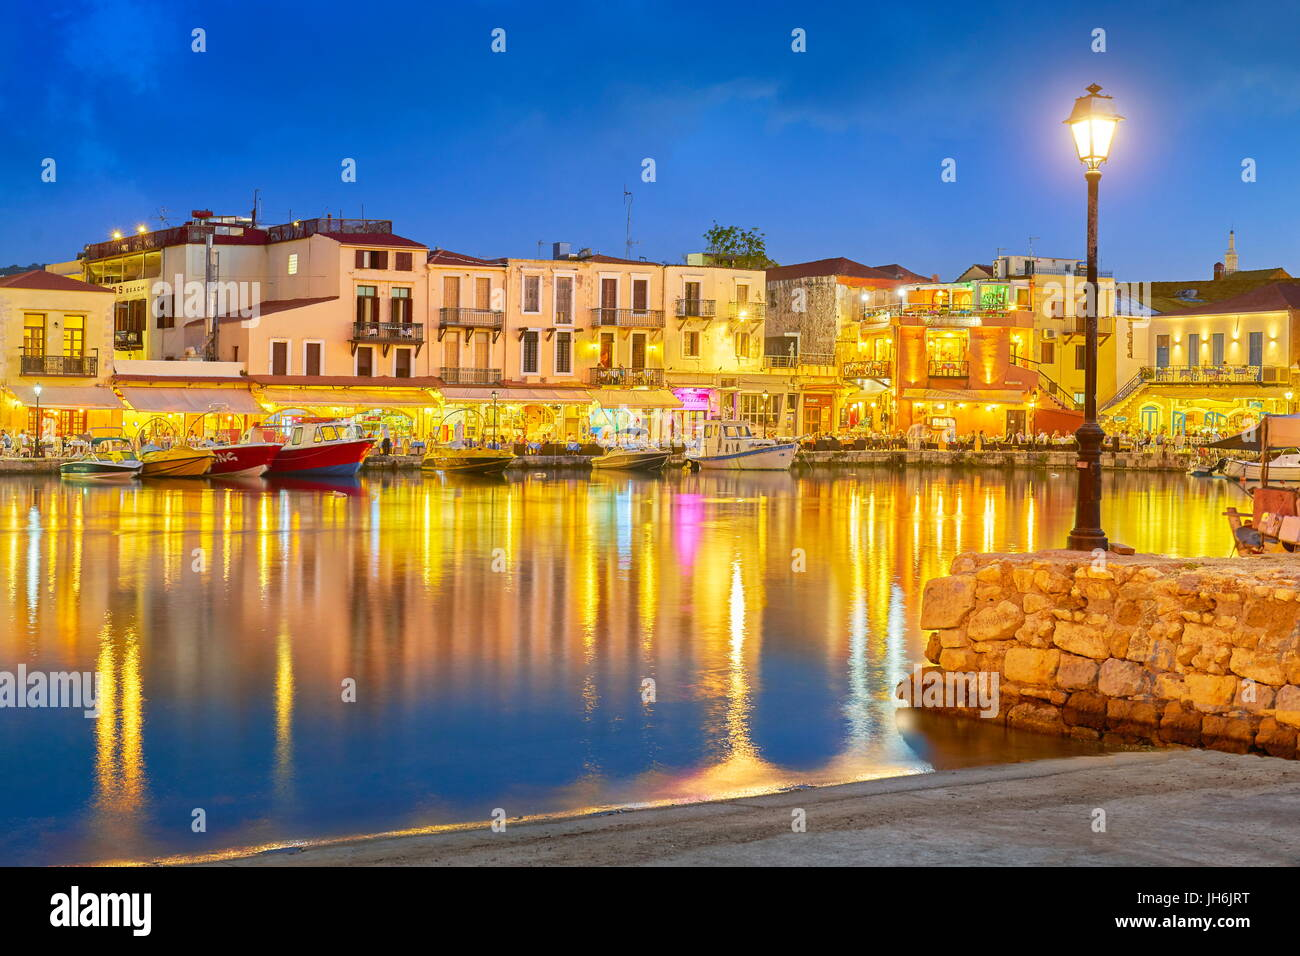 Old Venetian Port, Rethymno, Crete, Greece - Stock Image